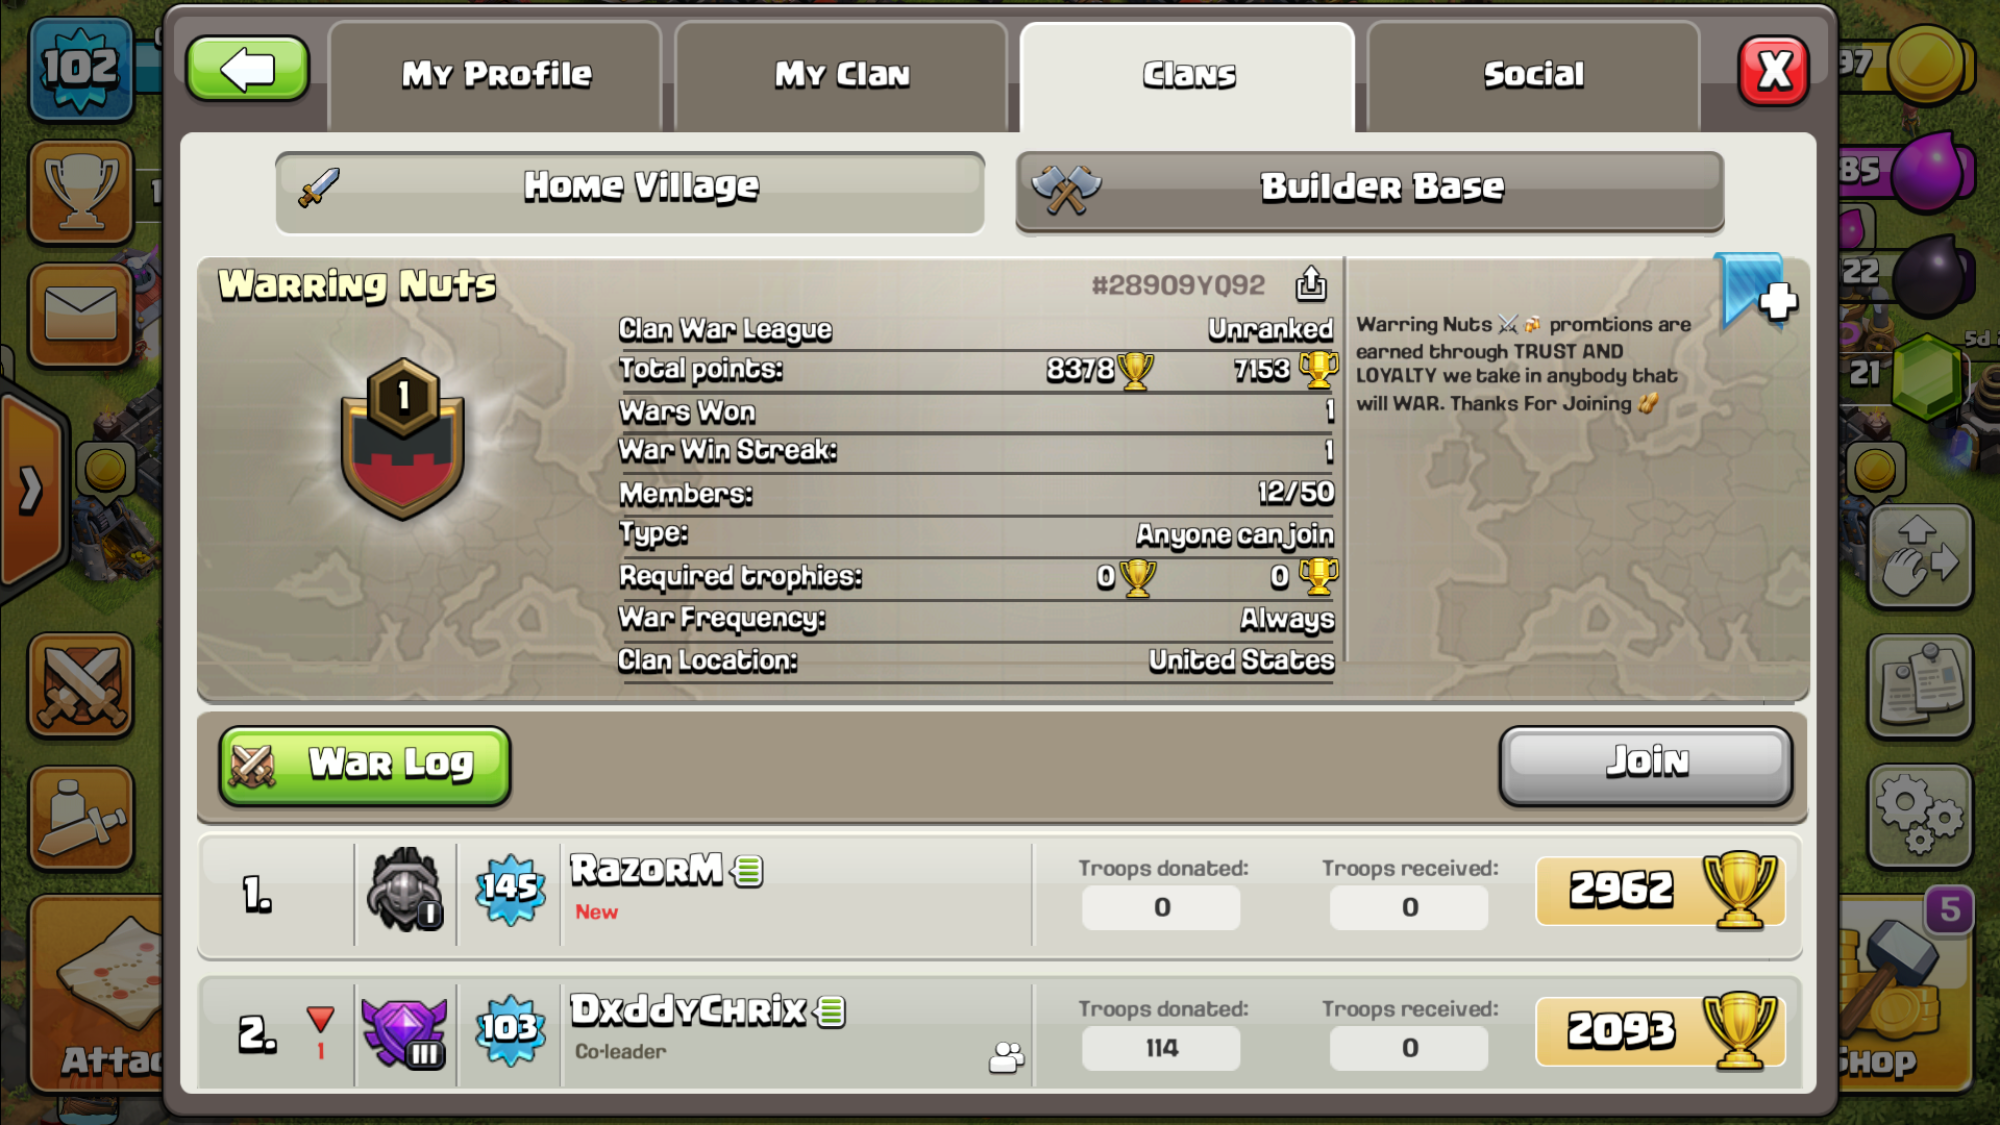 If anyone wants join your welcomed, just trying to start my own mini war clan.